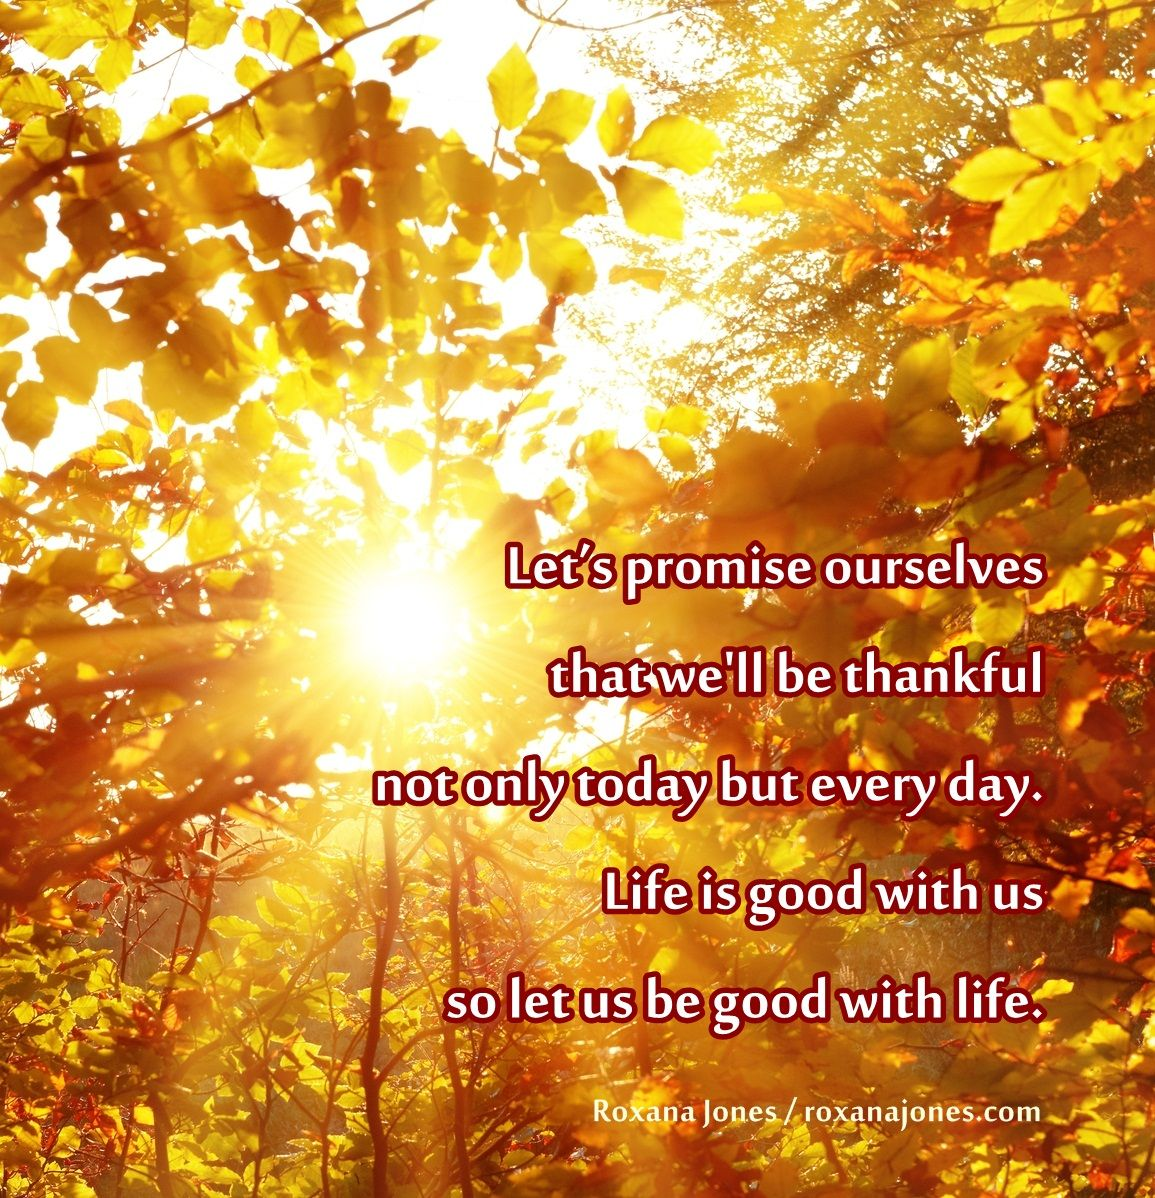 Famous Quotes For Thanksgiving: Inspirational Quote: Happy Thanksgiving!